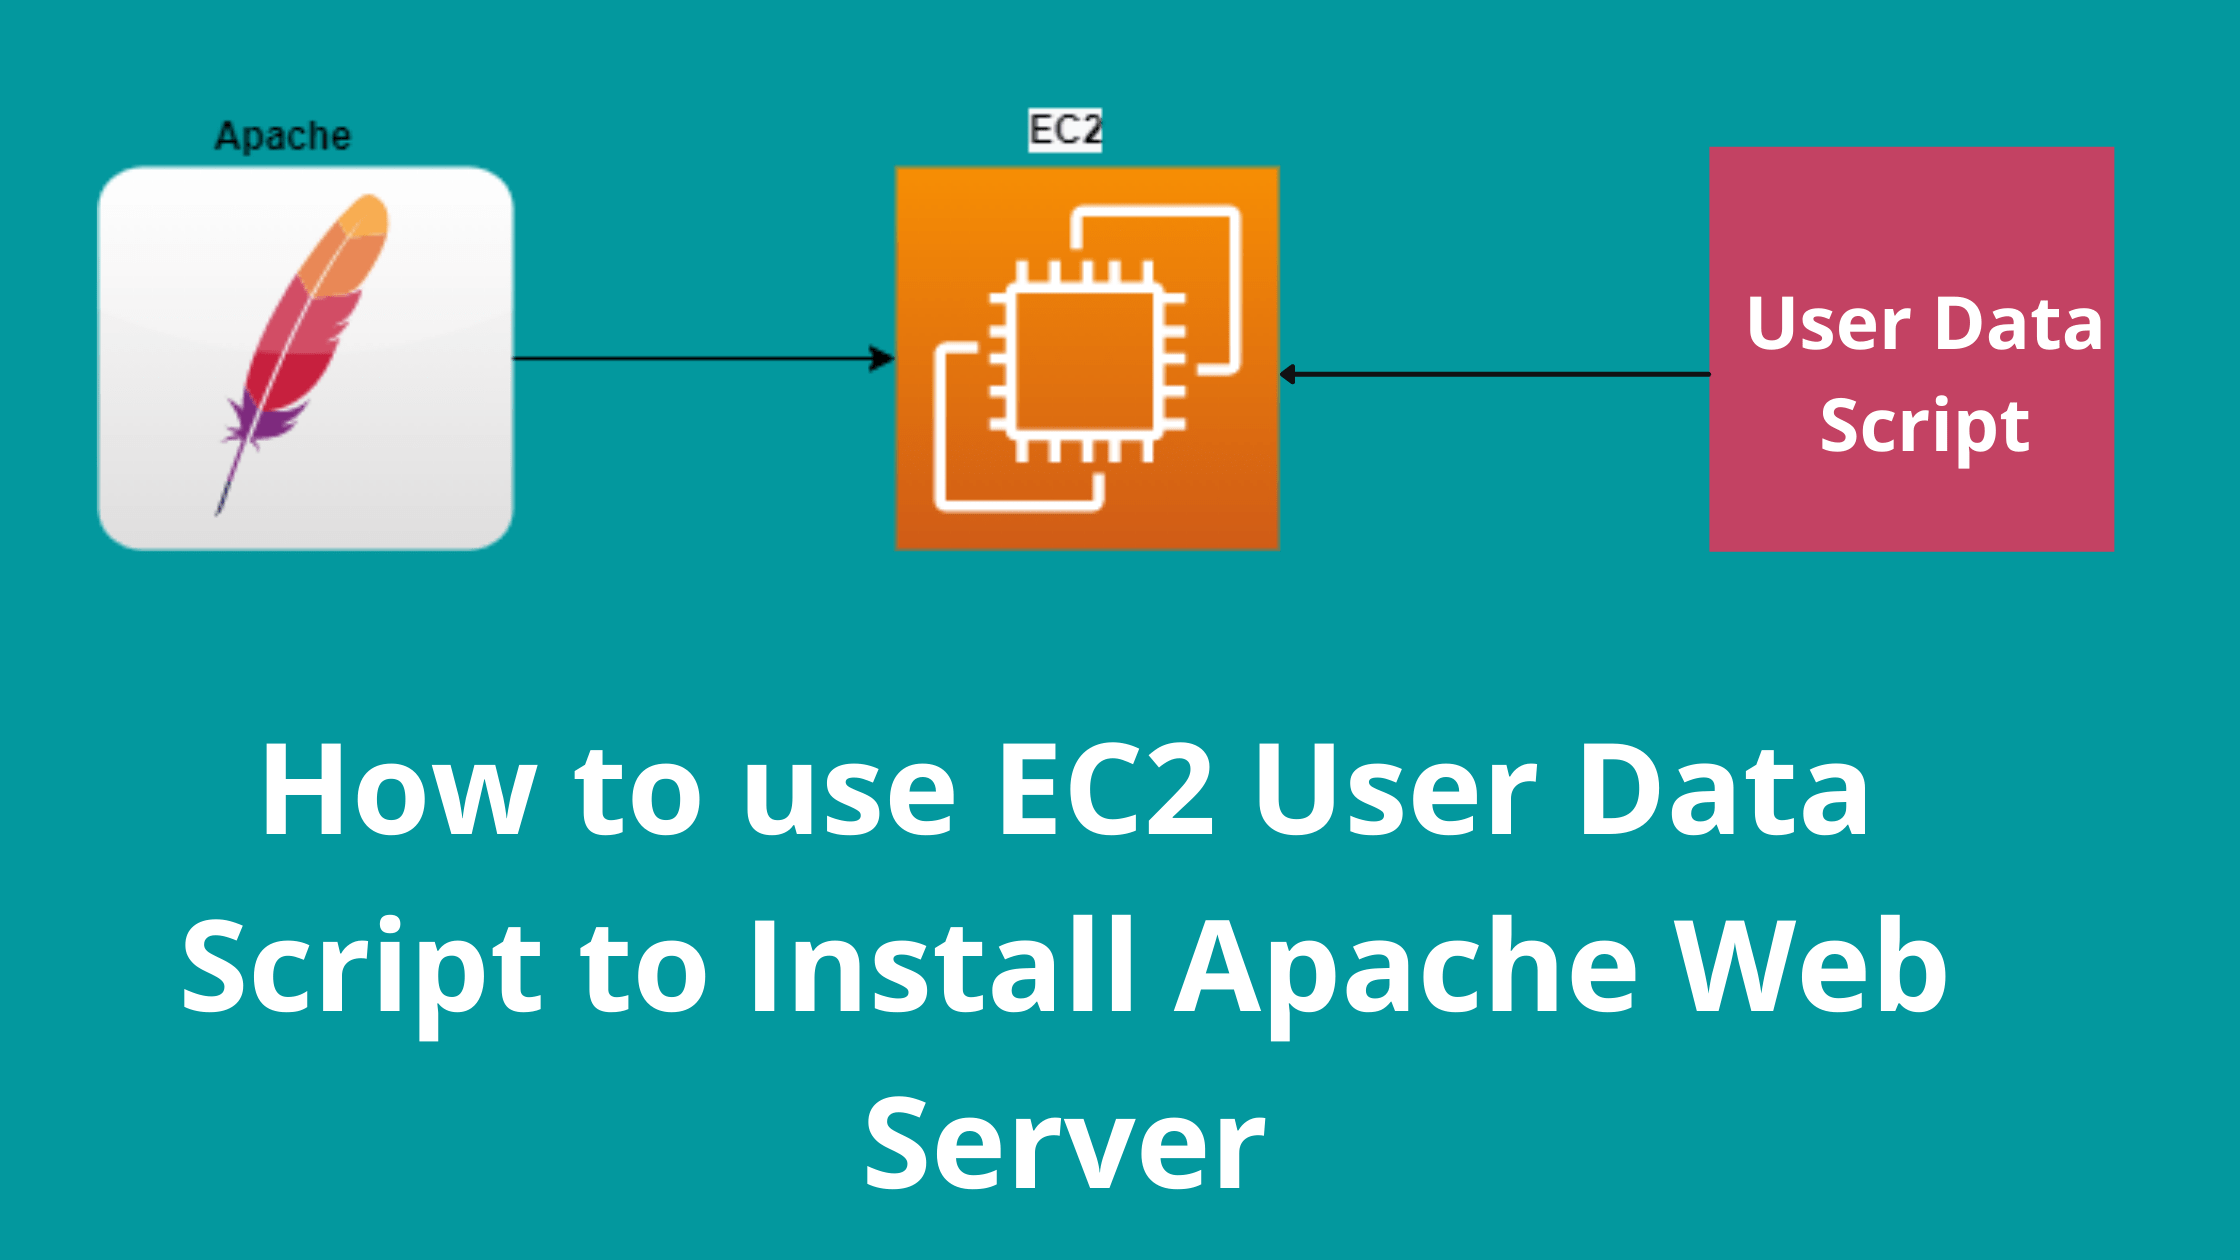 How to use EC2 User Data Script to Install Apache Web Server